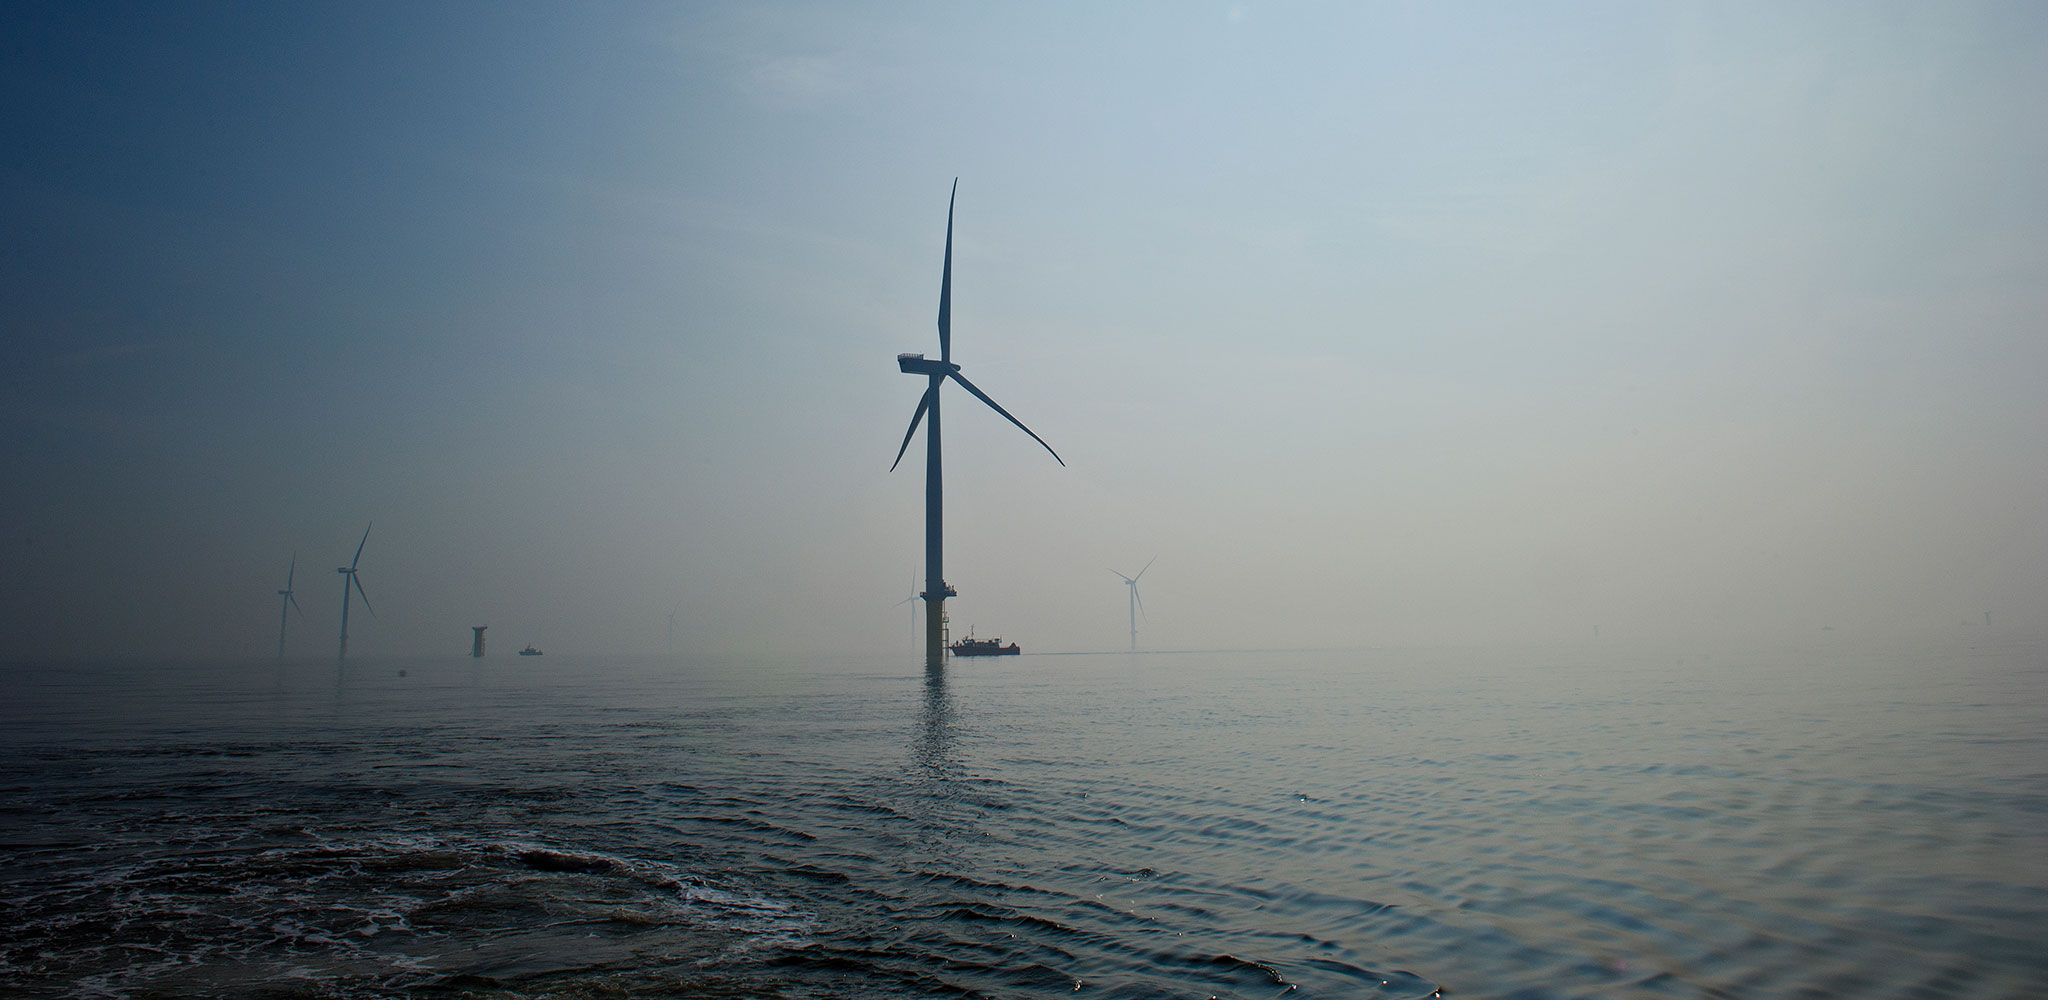 Ørsted Hornsea 01 Offshore Wind Farm